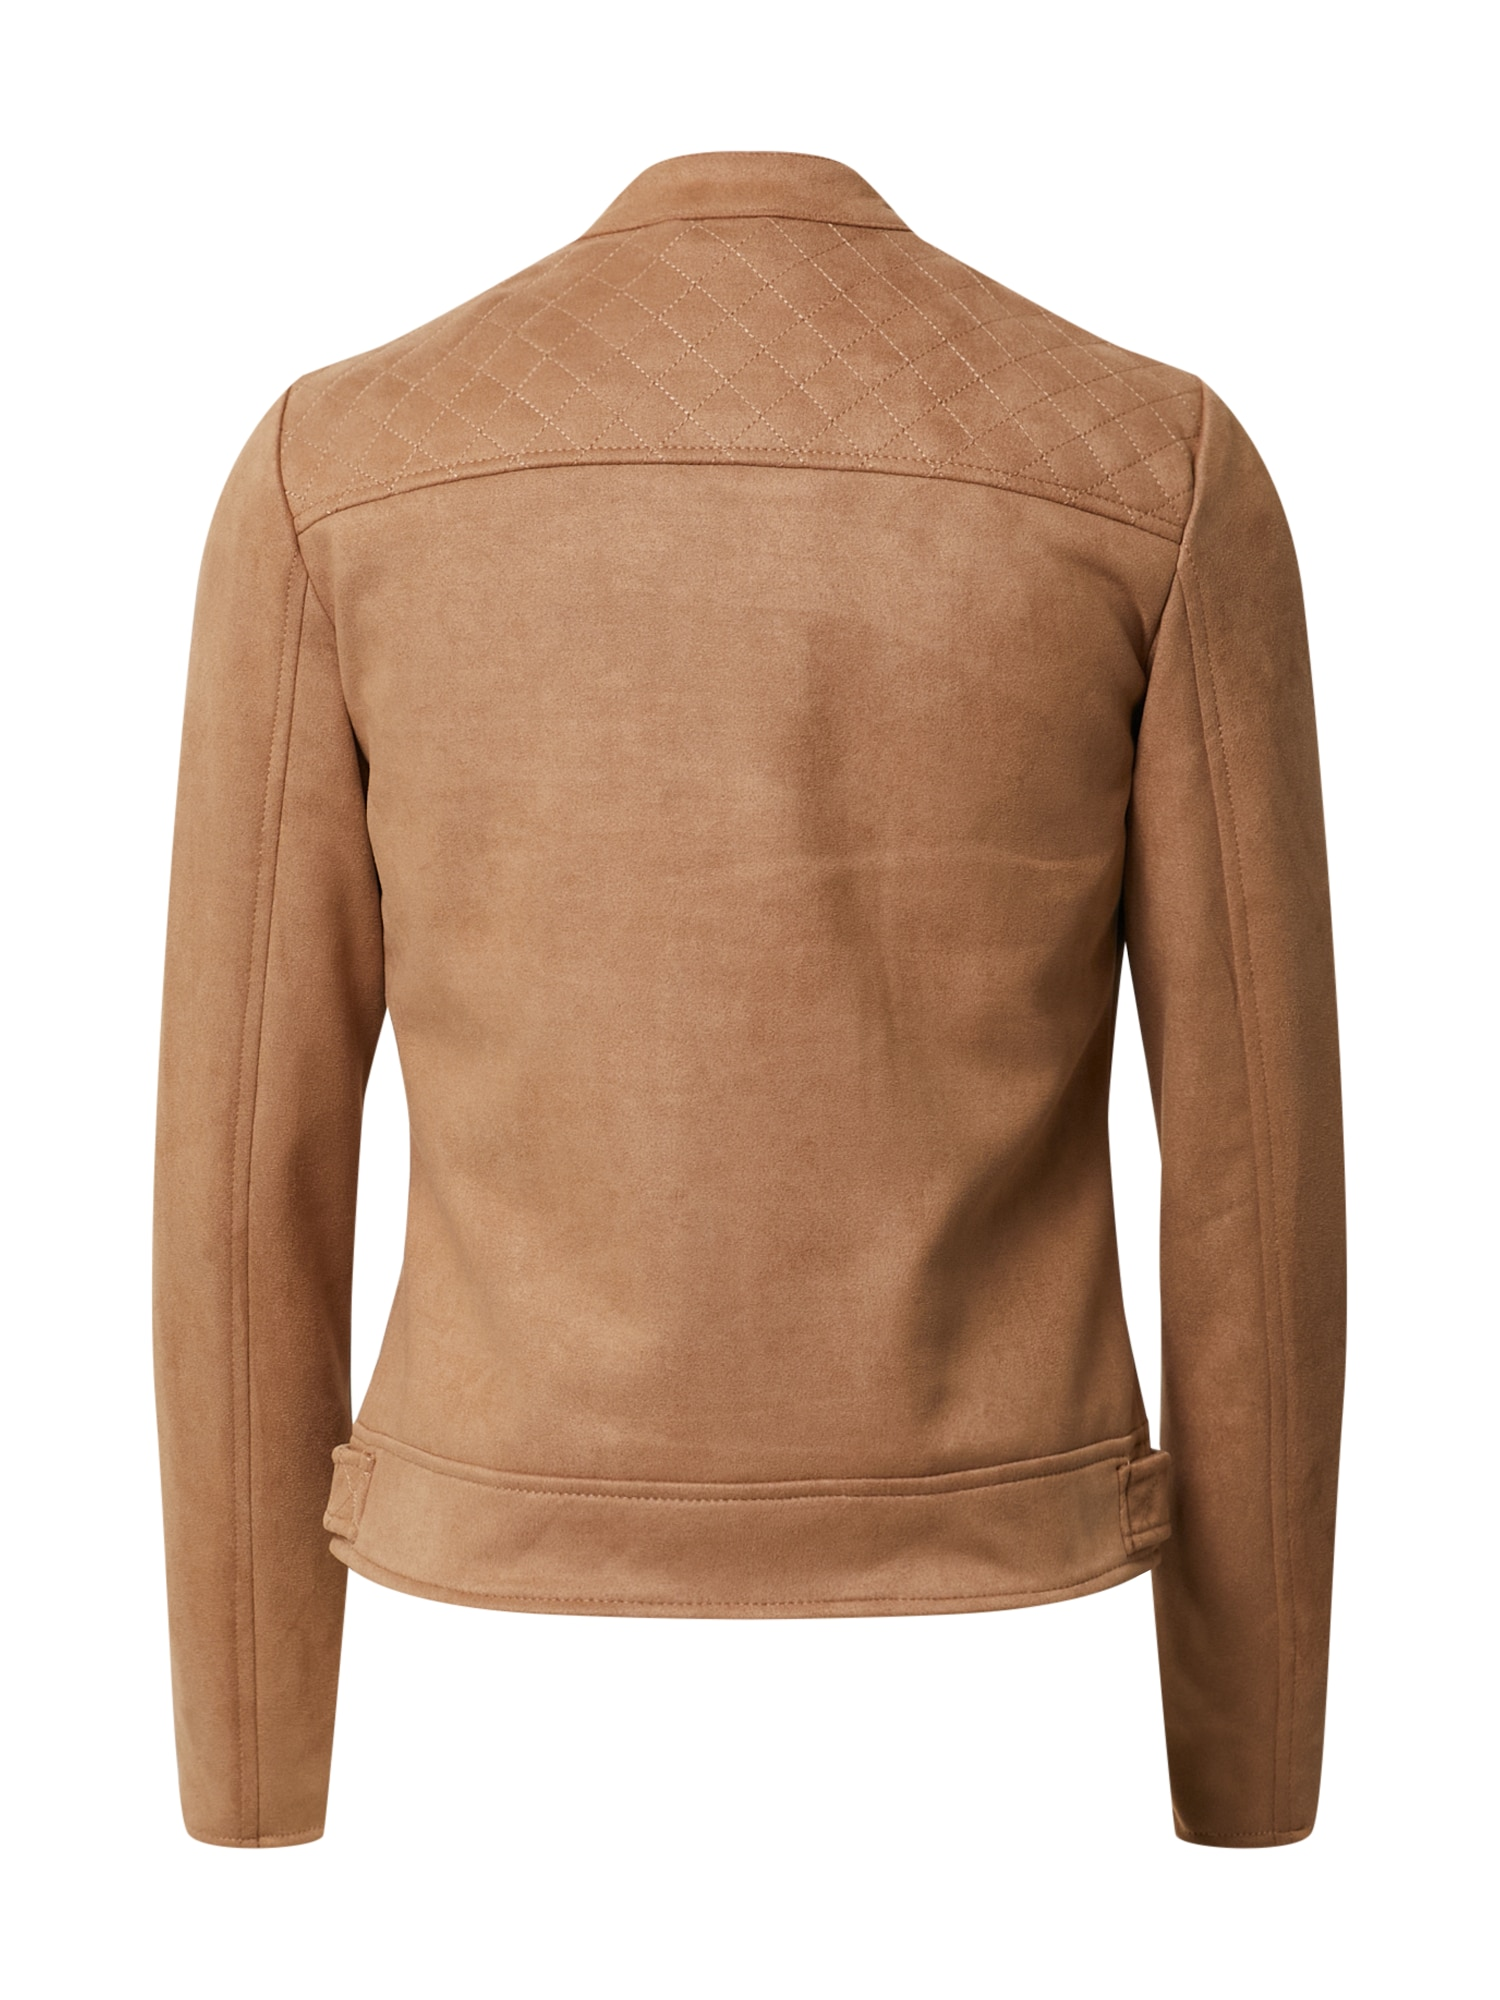 dorothy perkins - Lederjacke 'Tan Suedette Collarless Jacket'